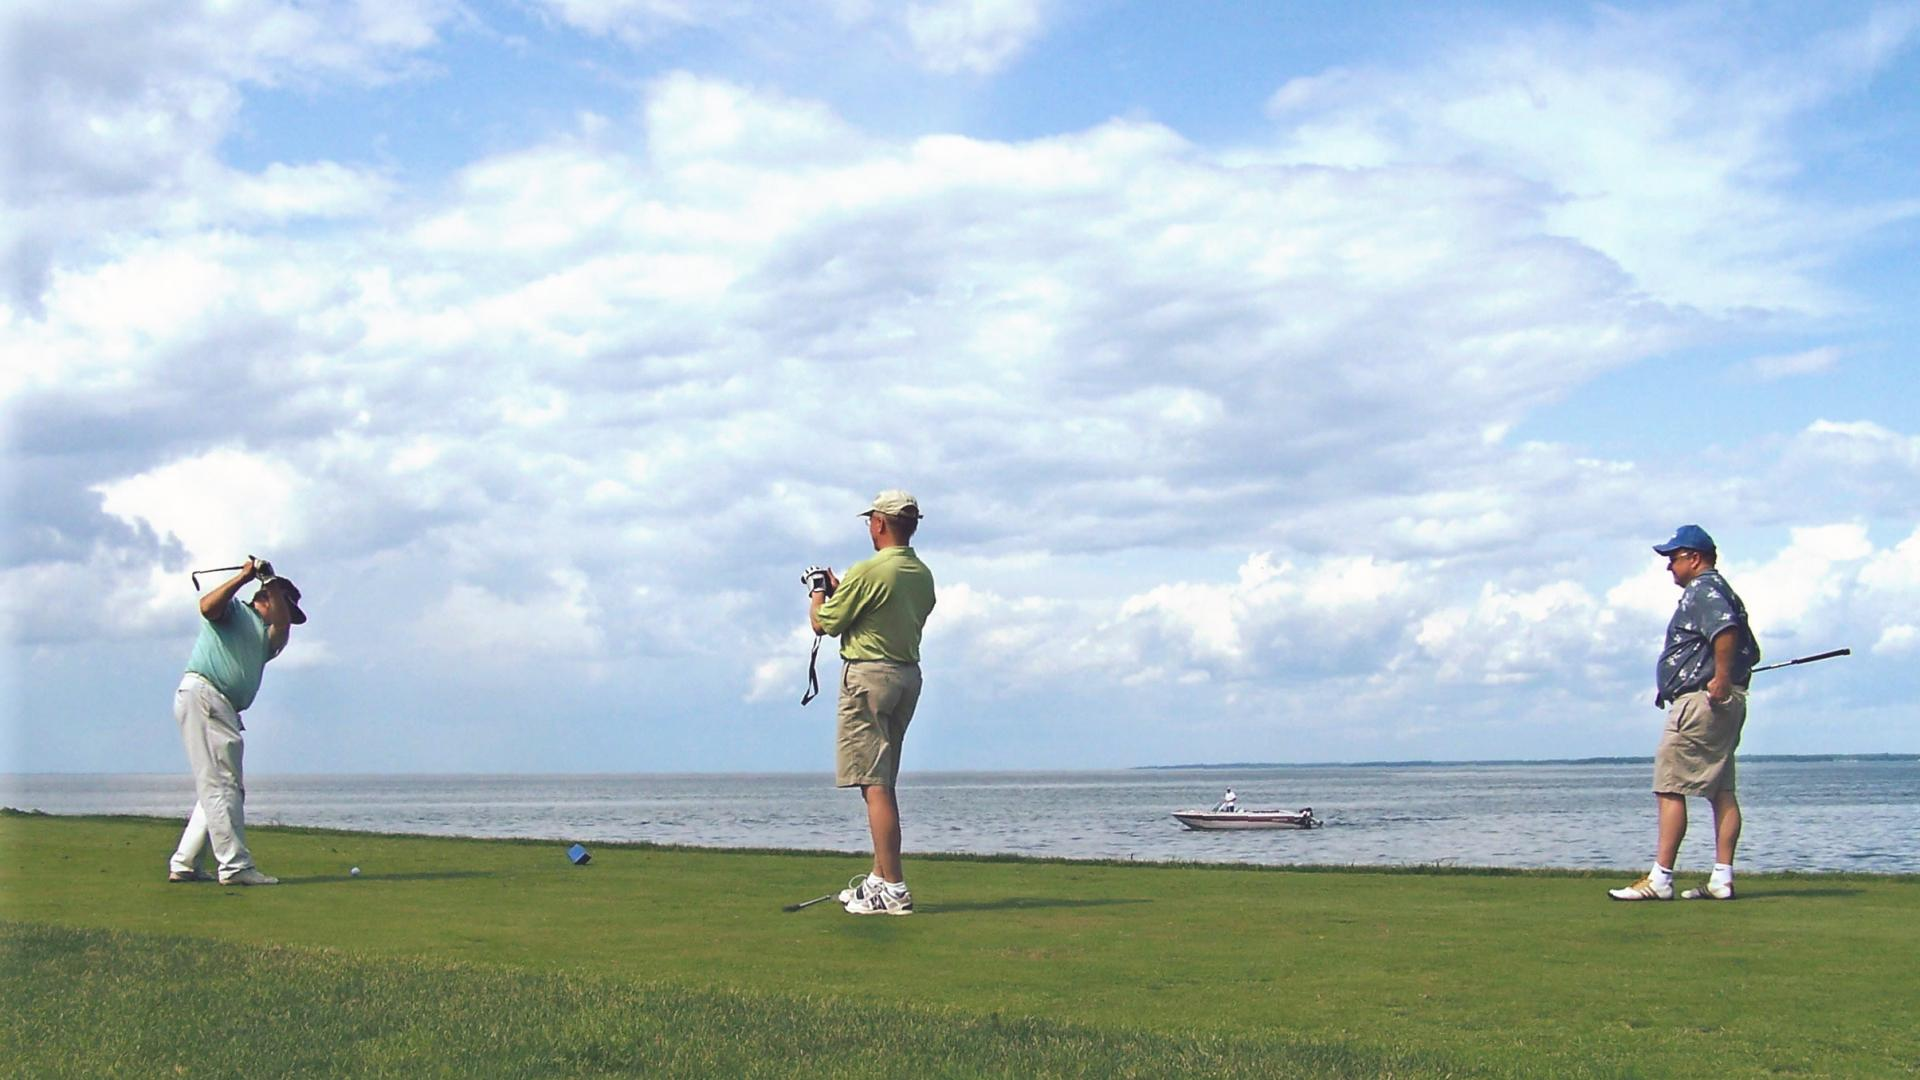 Three golfers at Izatys with Lake Mille Lacs in background